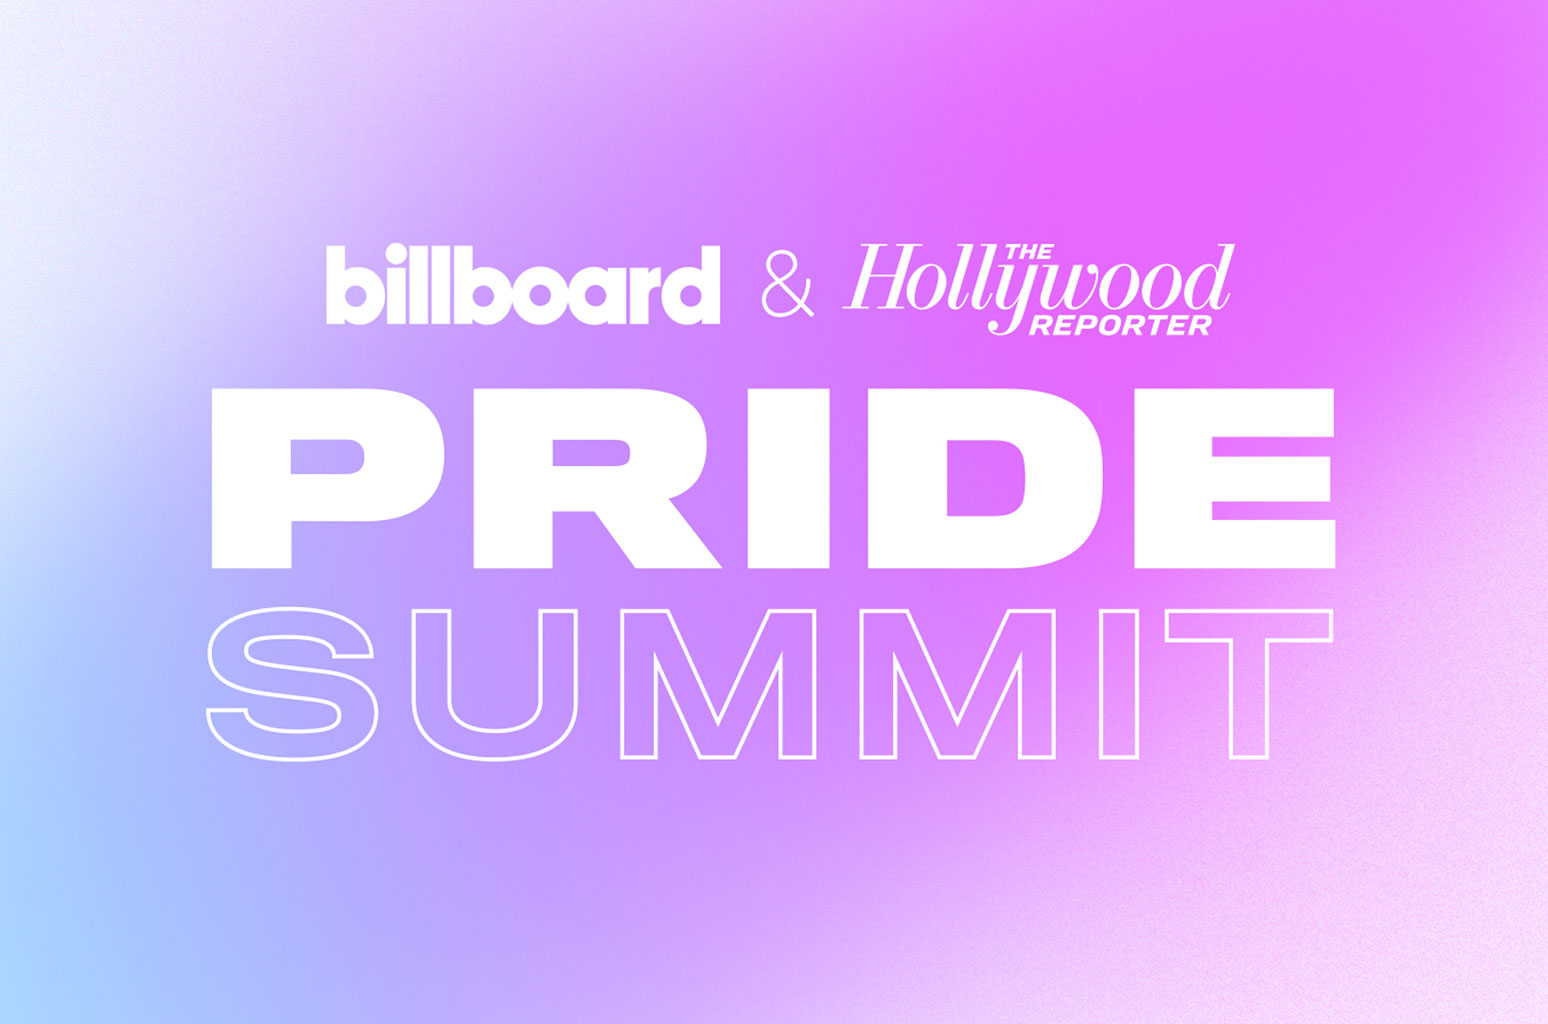 Inaugural 'Pride Summit' from Billboard and Hollywood Reporter Aug 8